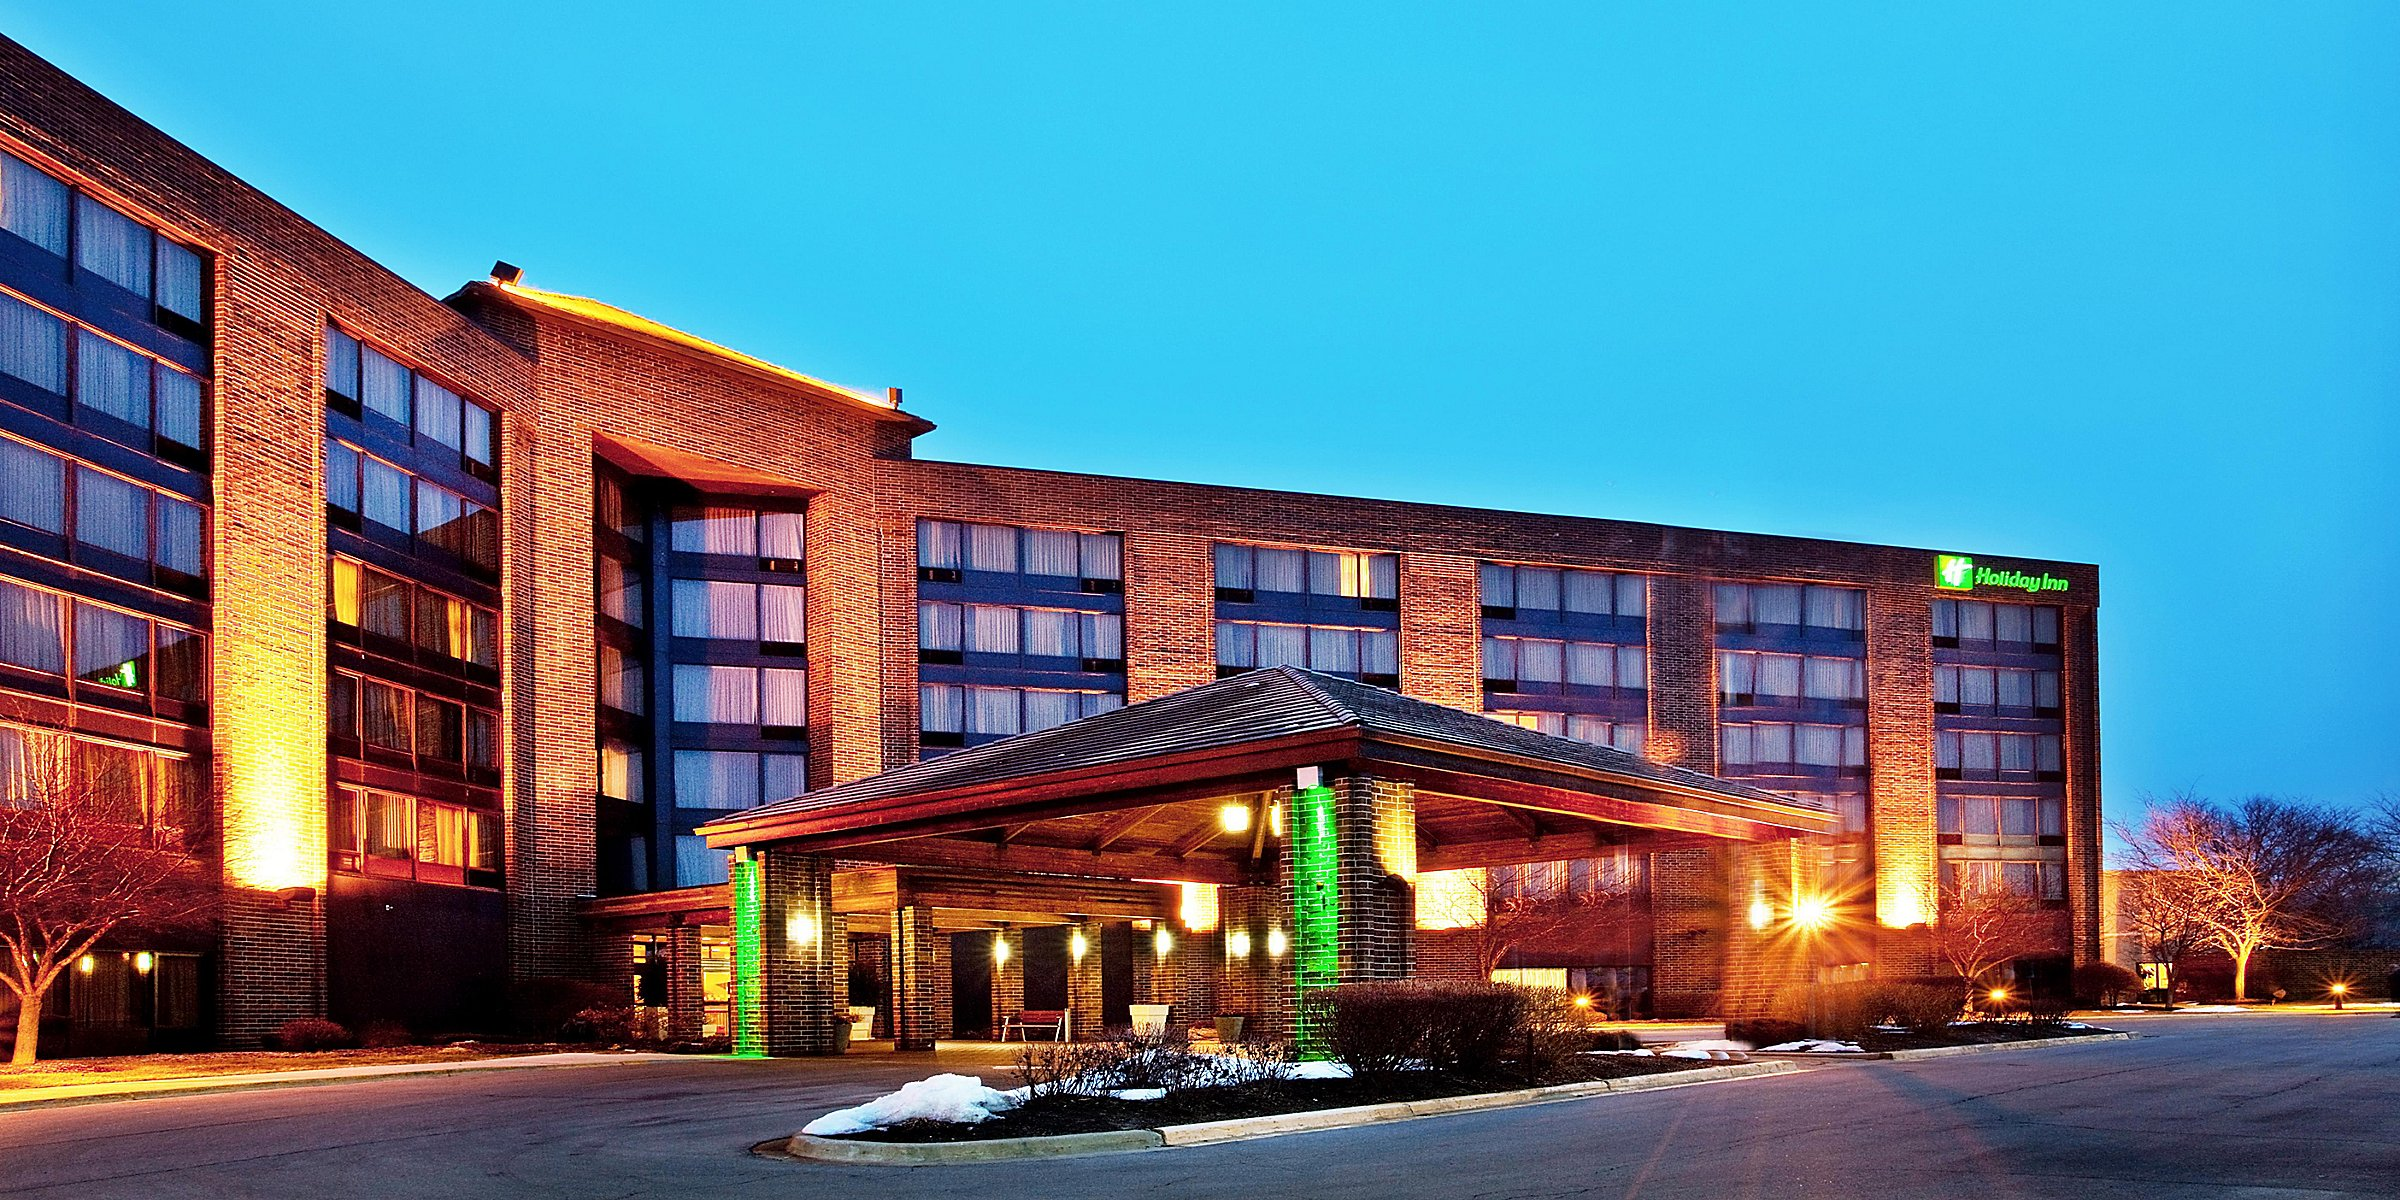 Hotels In Crystal Lake Il Near Mchenry Holiday Inn Chicago Nw Crystal Lk Conv Ctr